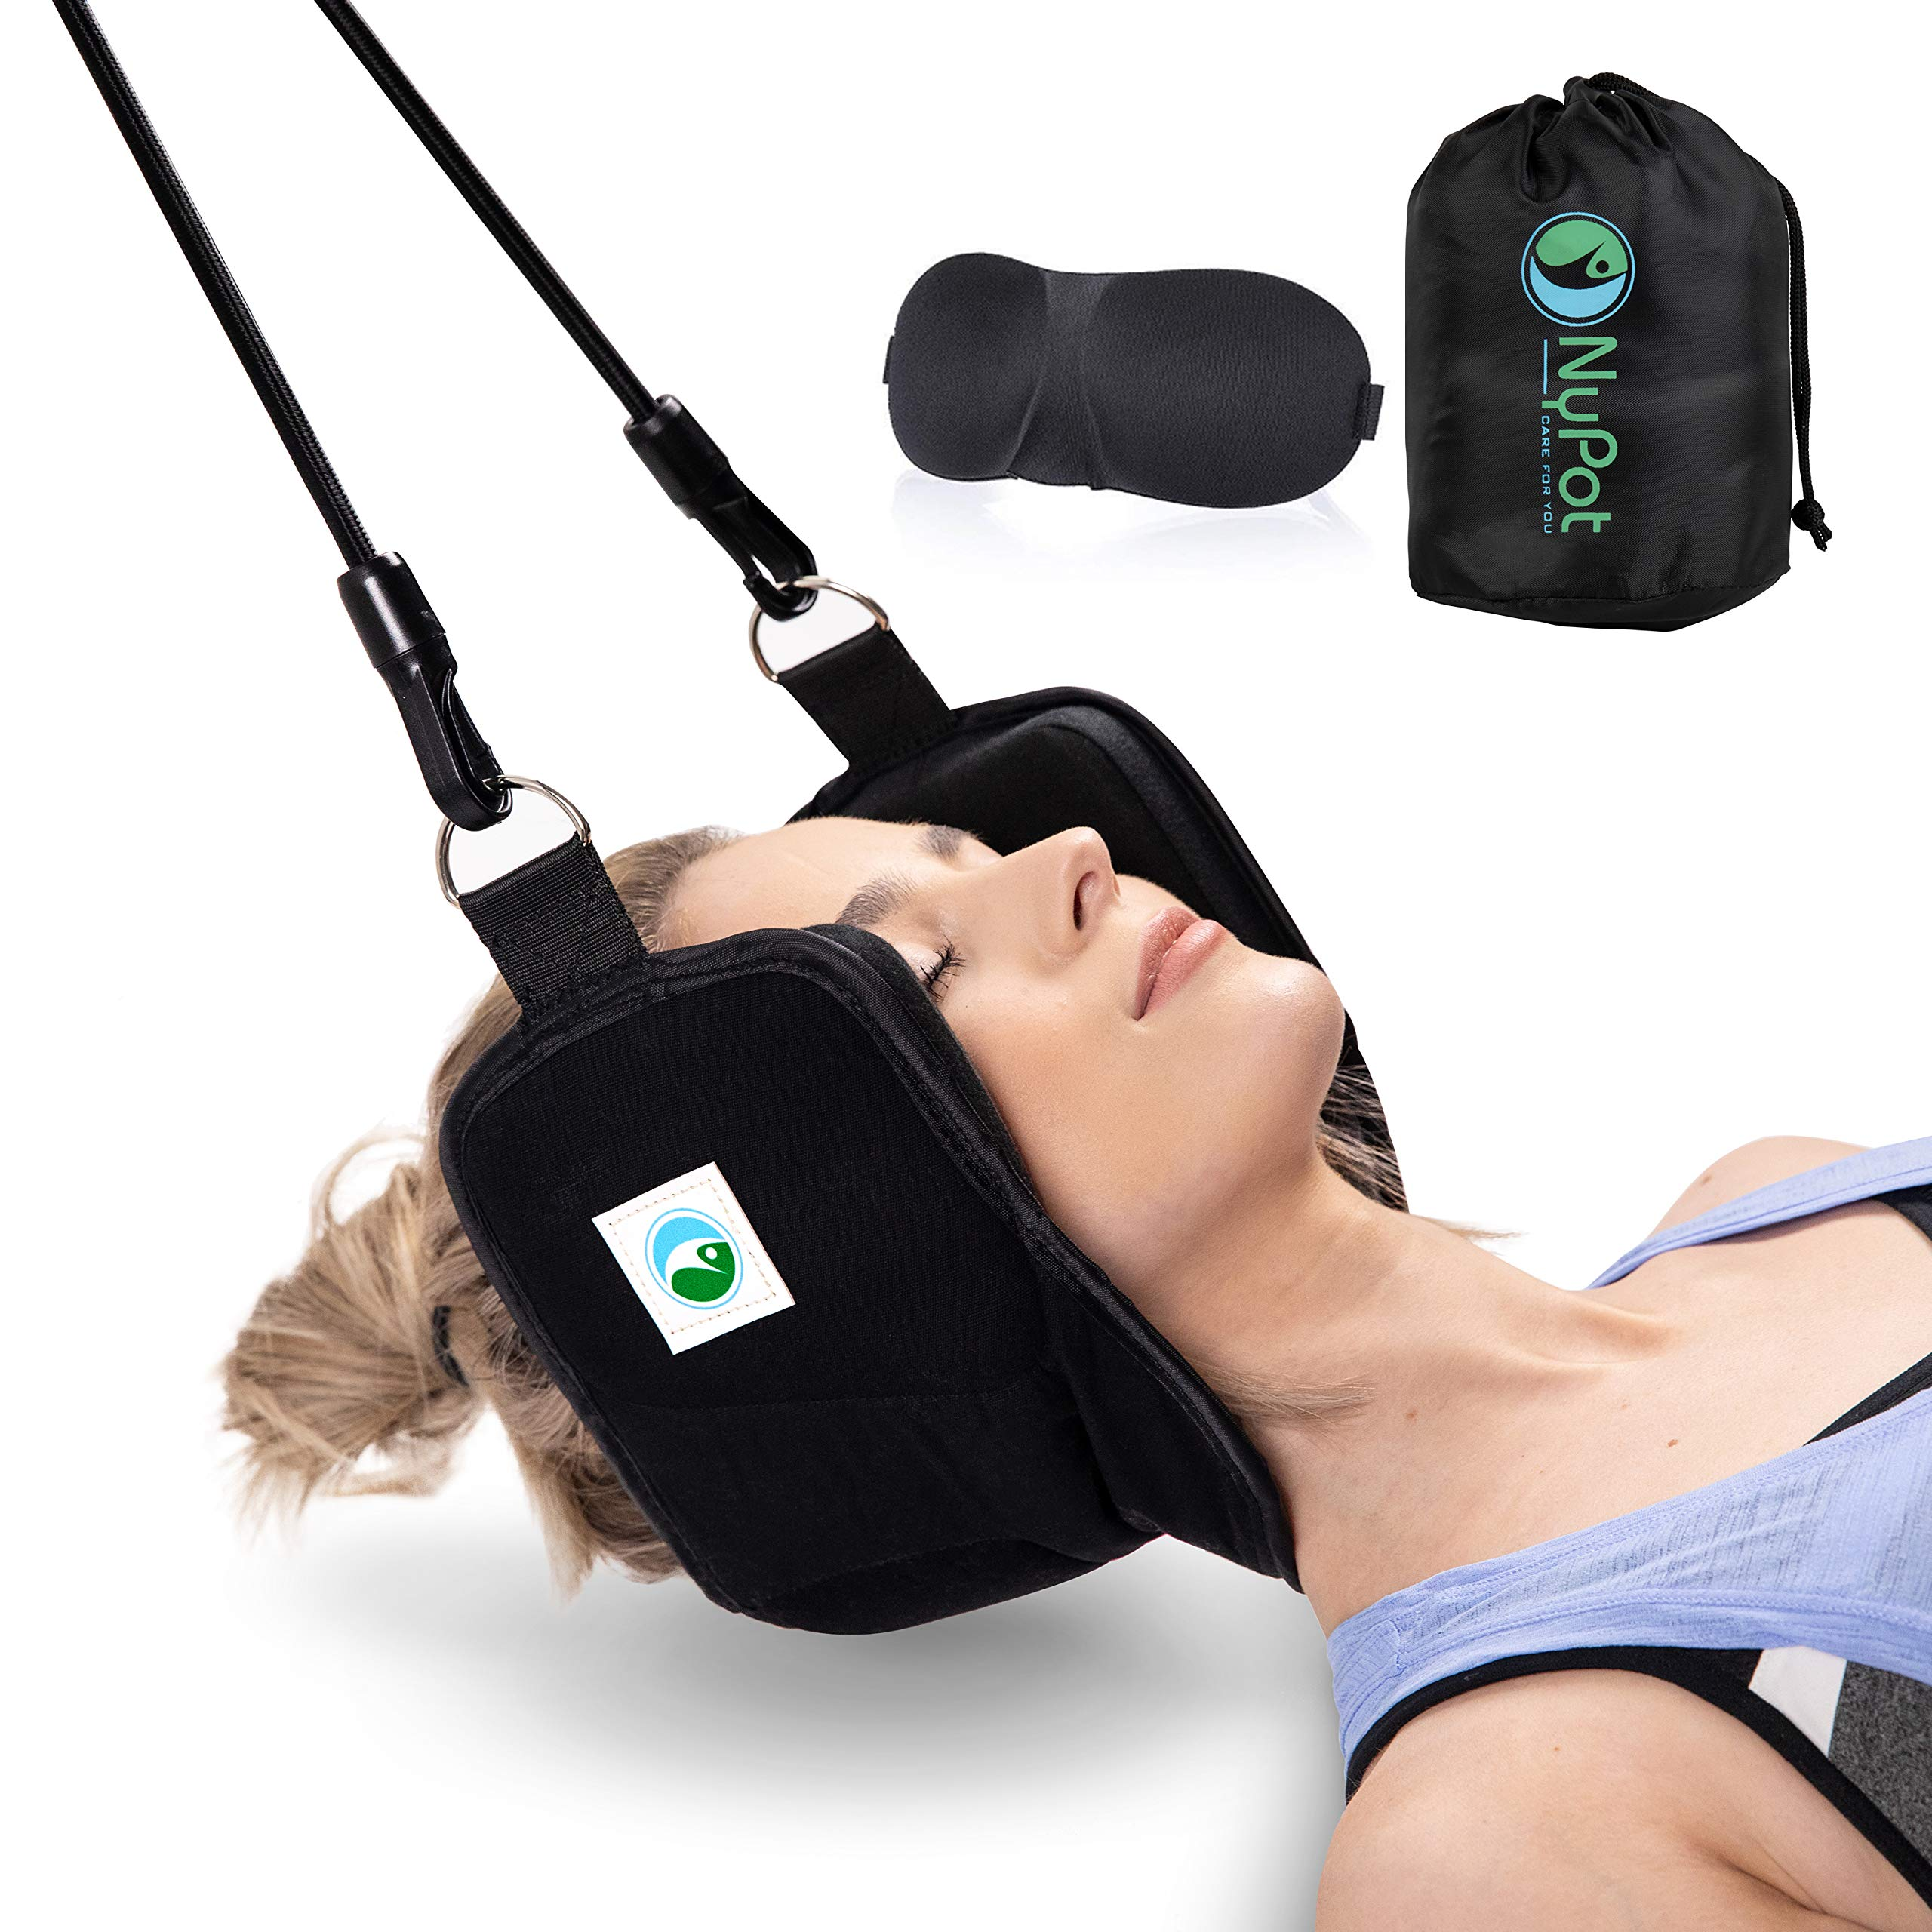 NyPot Premium Head Hammock - Portable Cervical Traction Device for Neck Pain Relief Massager for Back and Shoulder Pain Neck Support and Stretcher Relaxation Gift for Mom and Dad with Eye Mask (black)